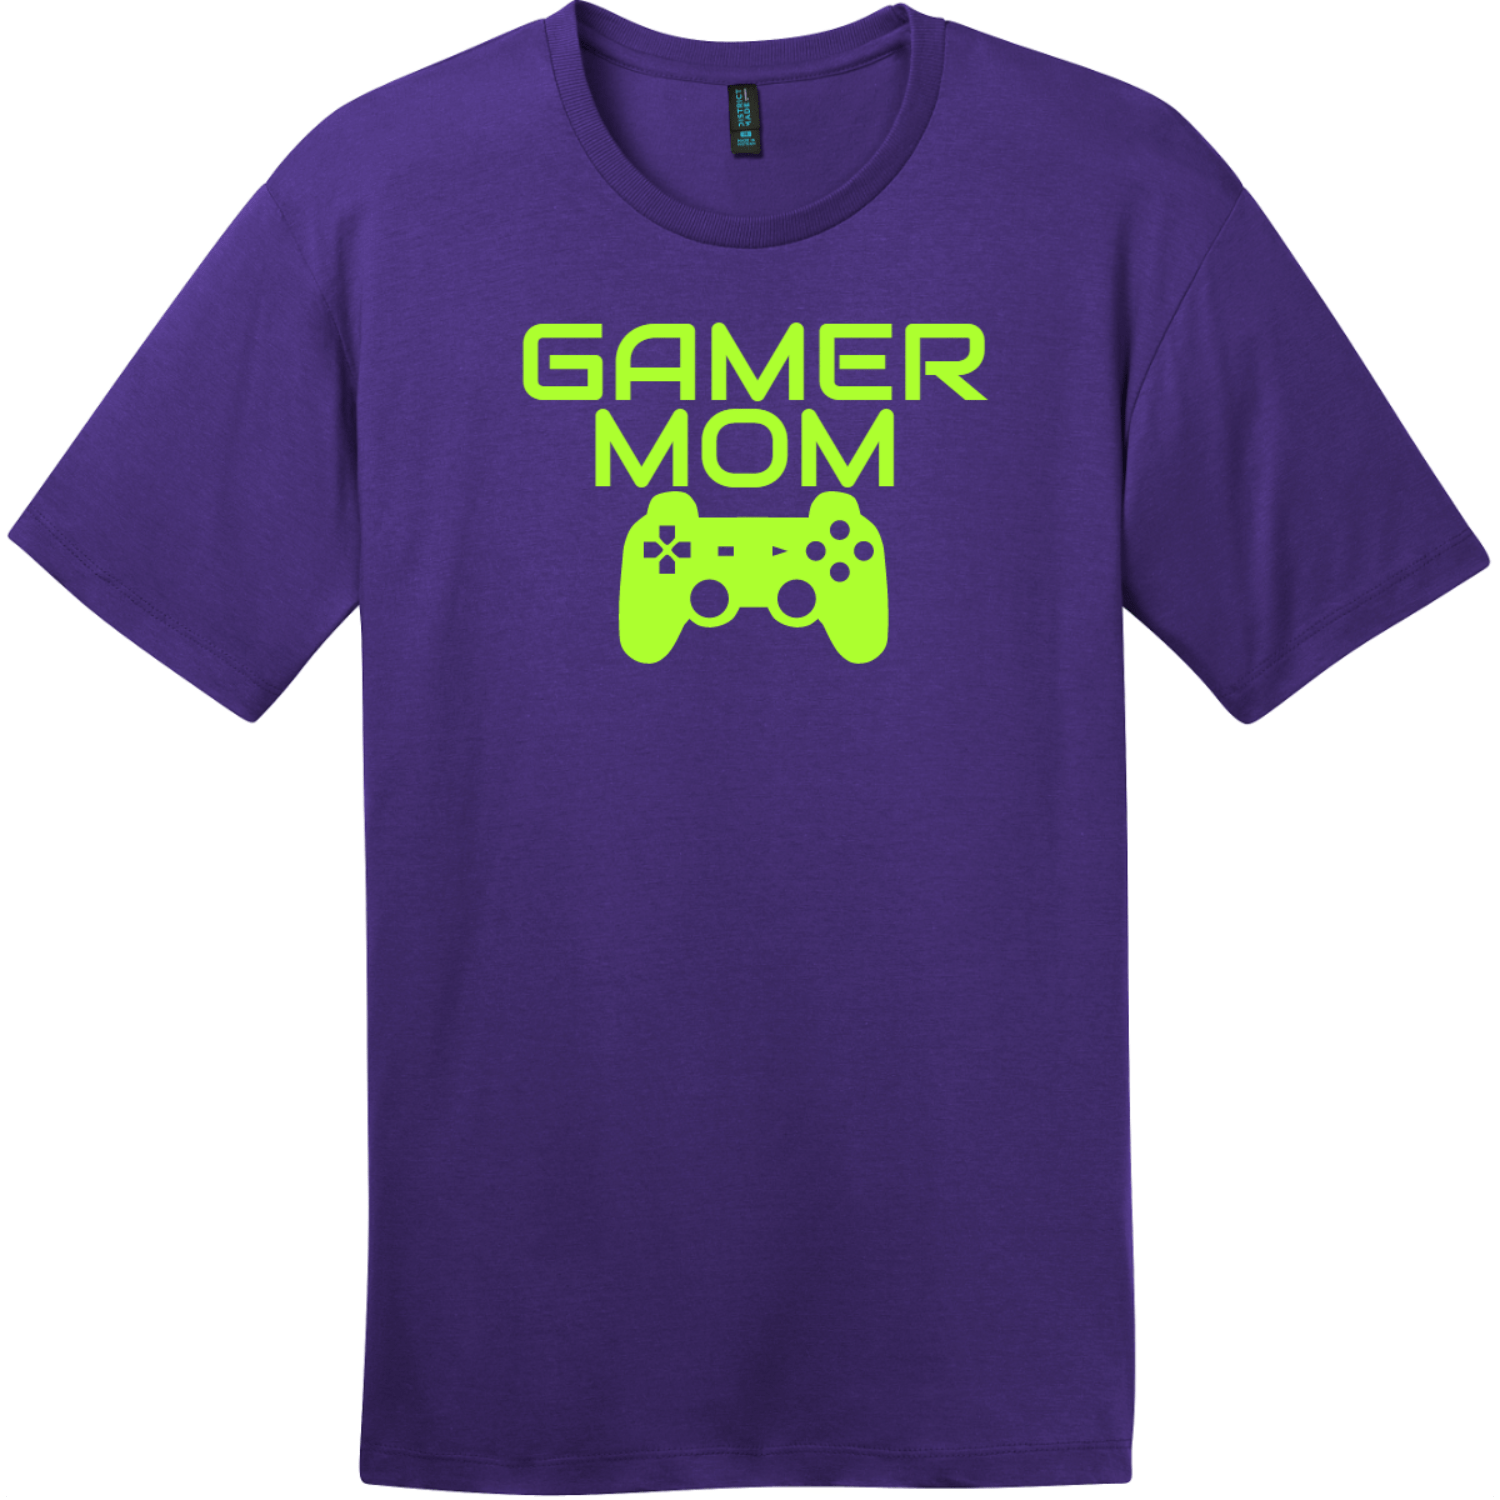 Gamer Mom T-Shirt Purple District Perfect Weight Tee DT104